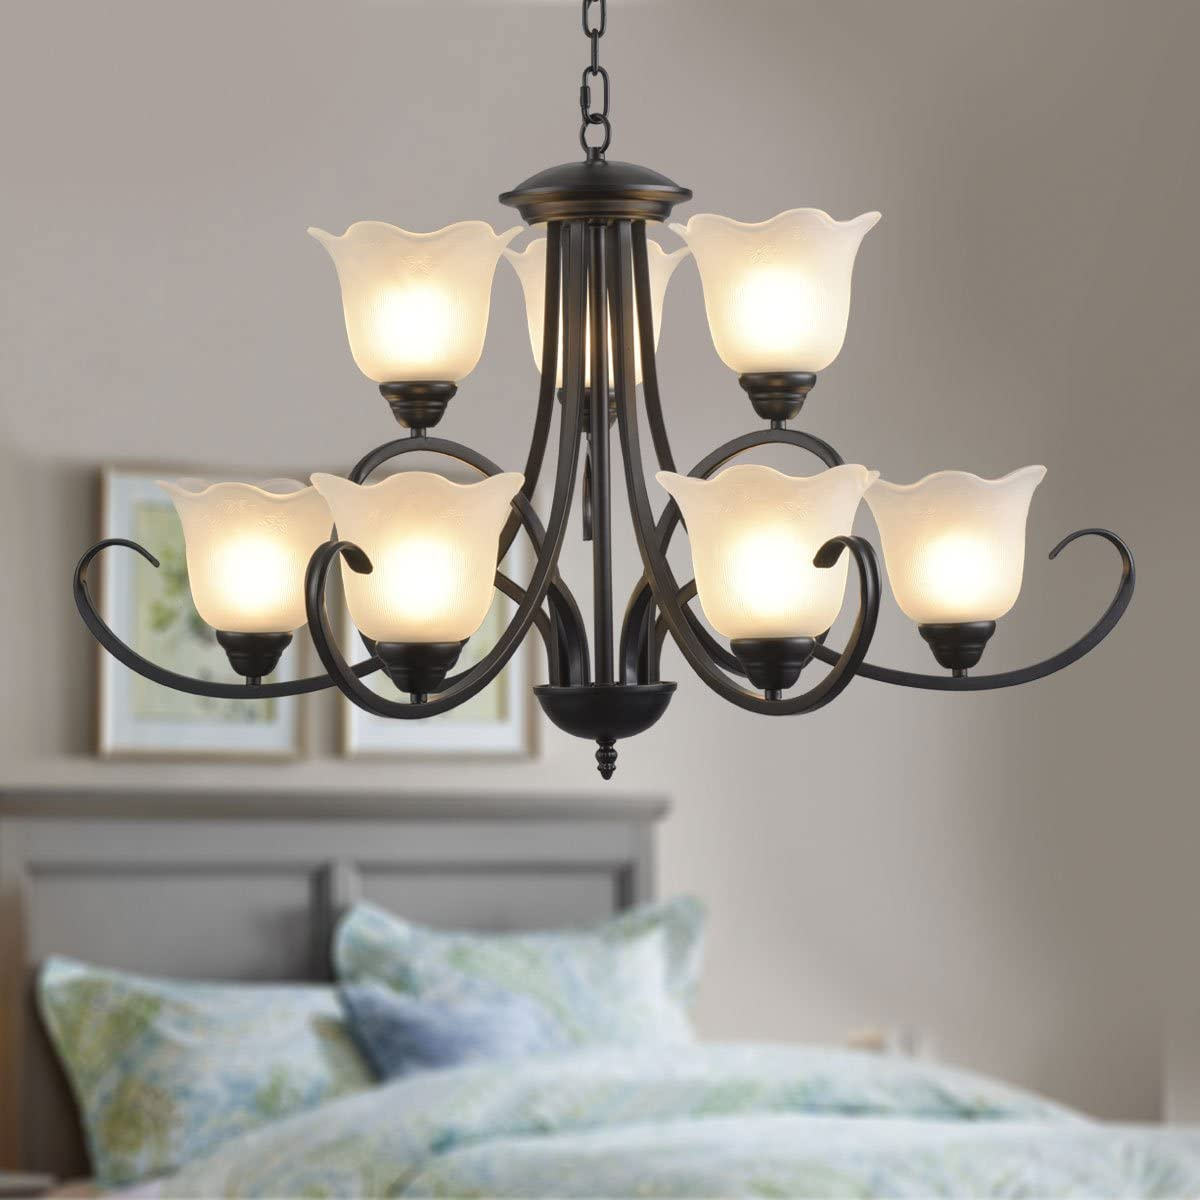 9-Light Black Wrought Iron Chandelier with Glass Shades E-8019-6 3